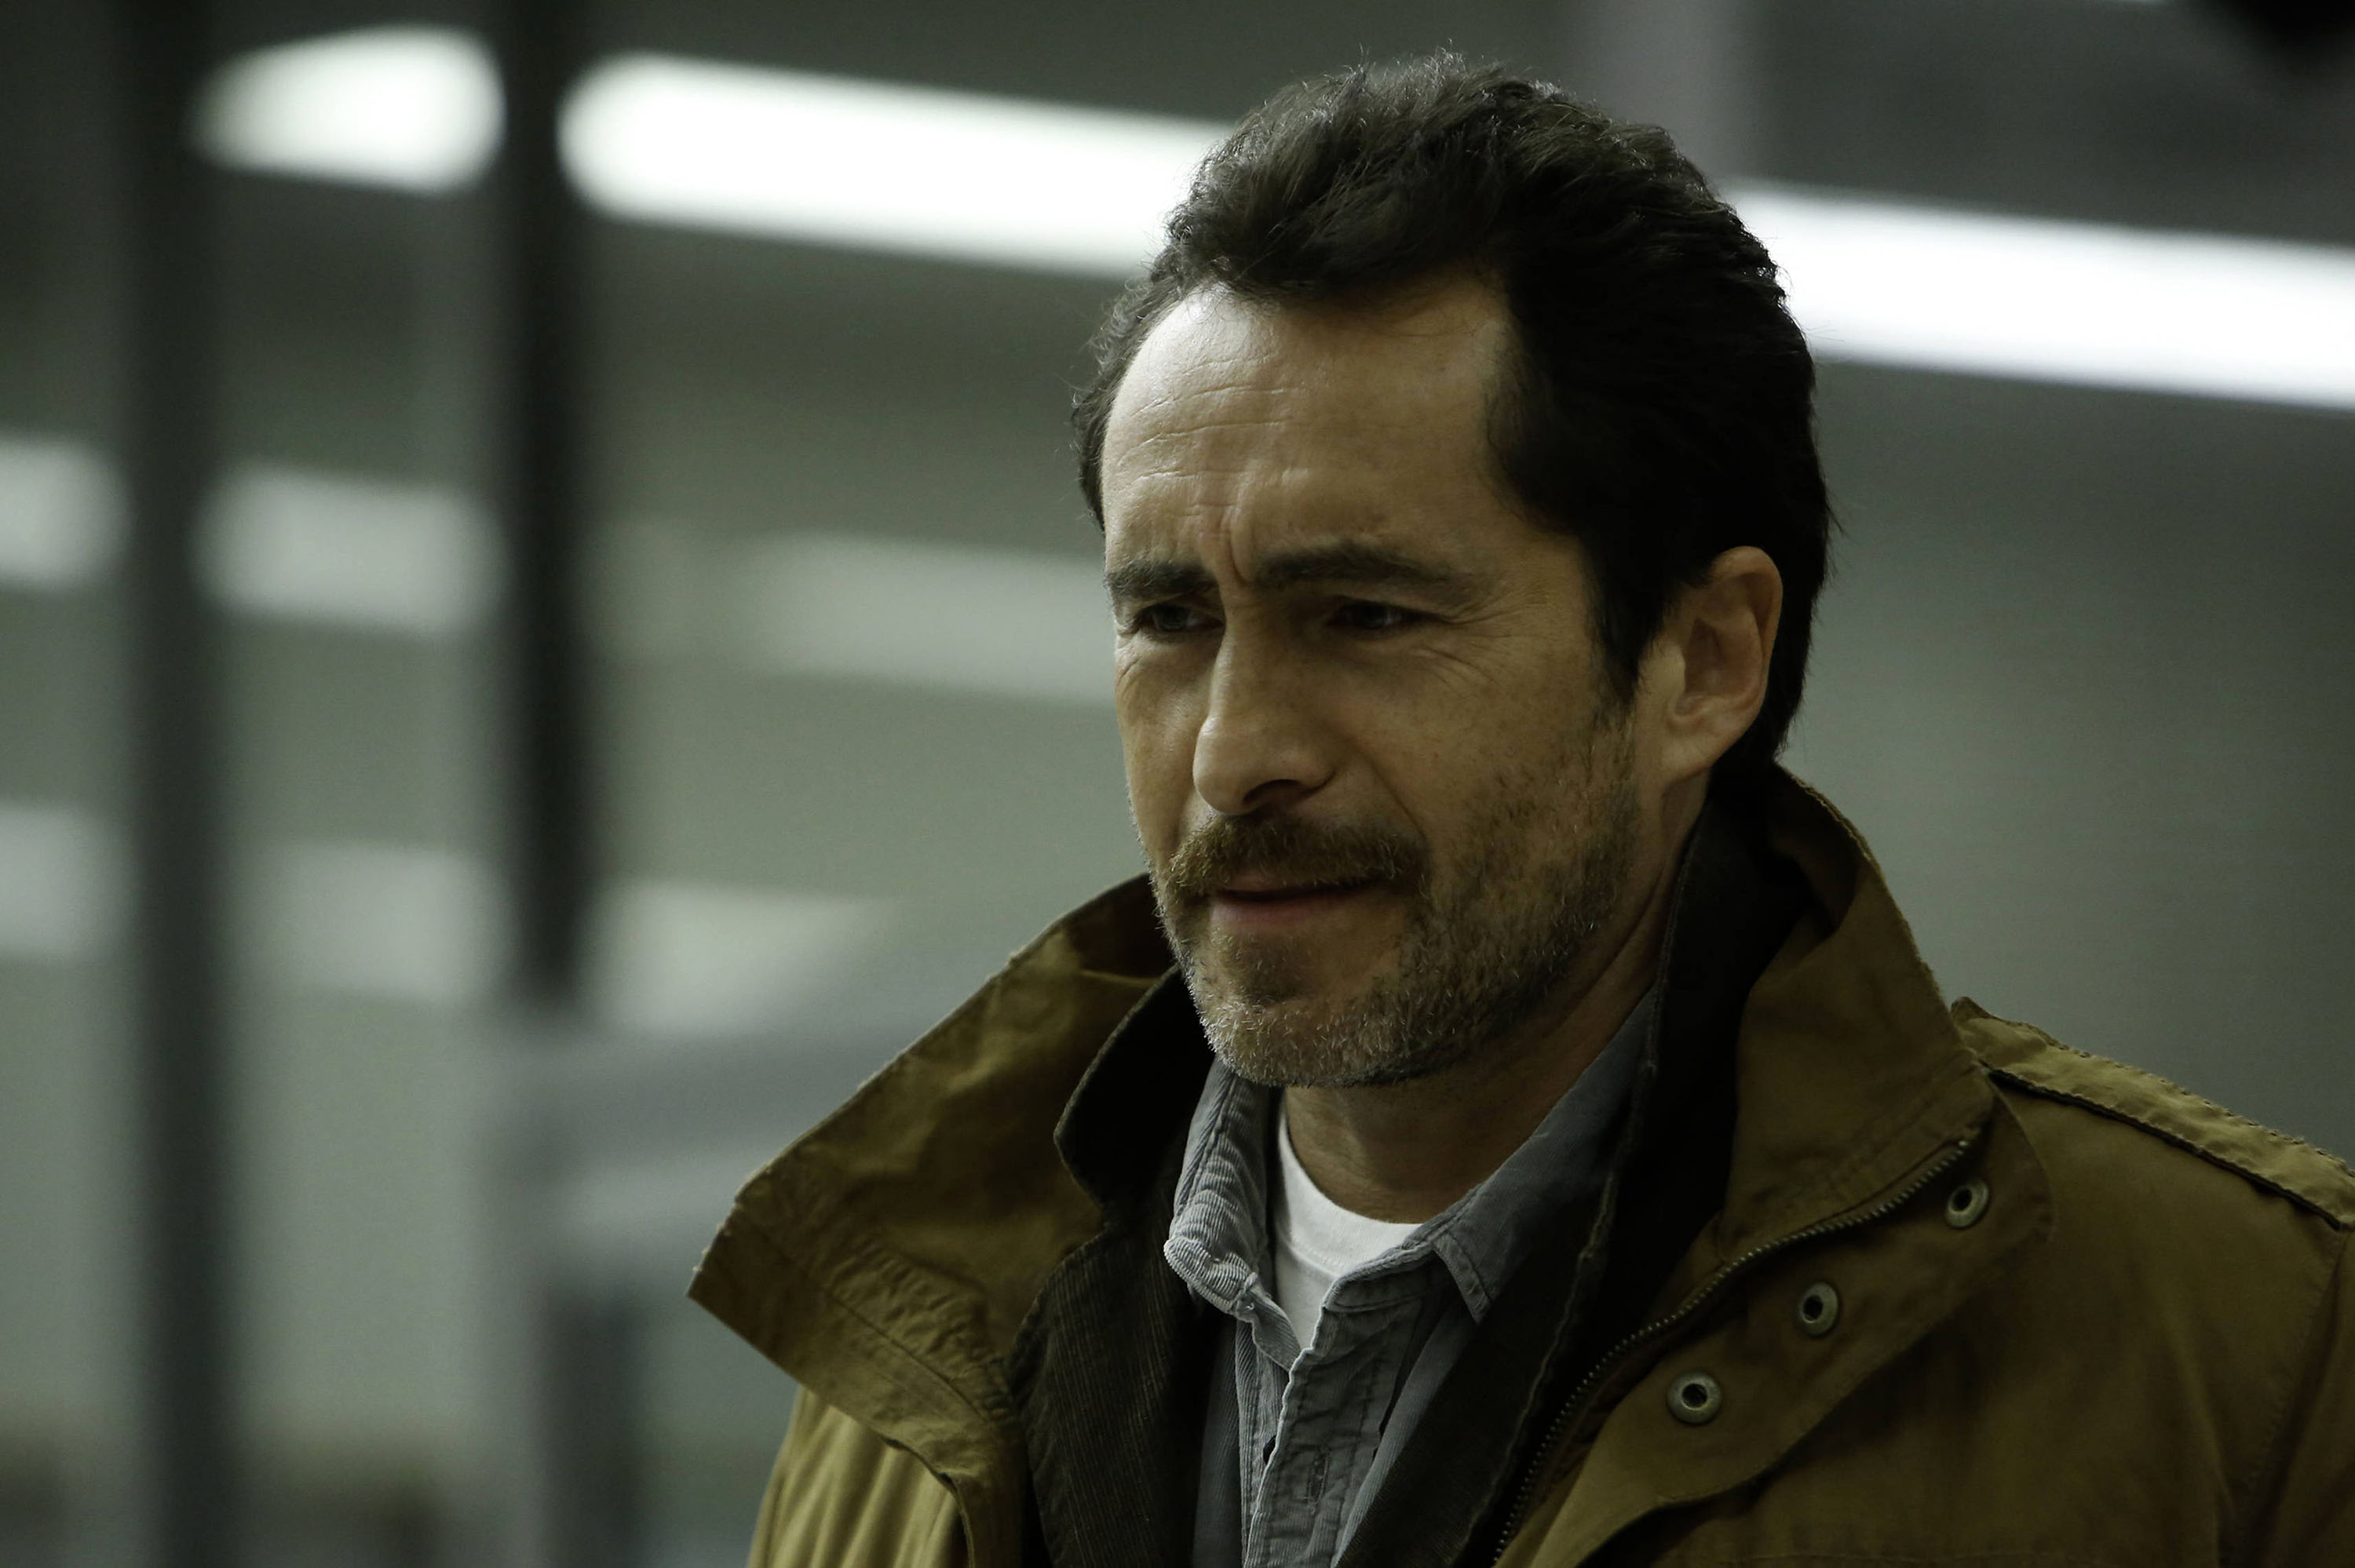 In Op-Ed, Actor Demian Bichir Urges Trump Administration: Stop Using Kids As Human Shields